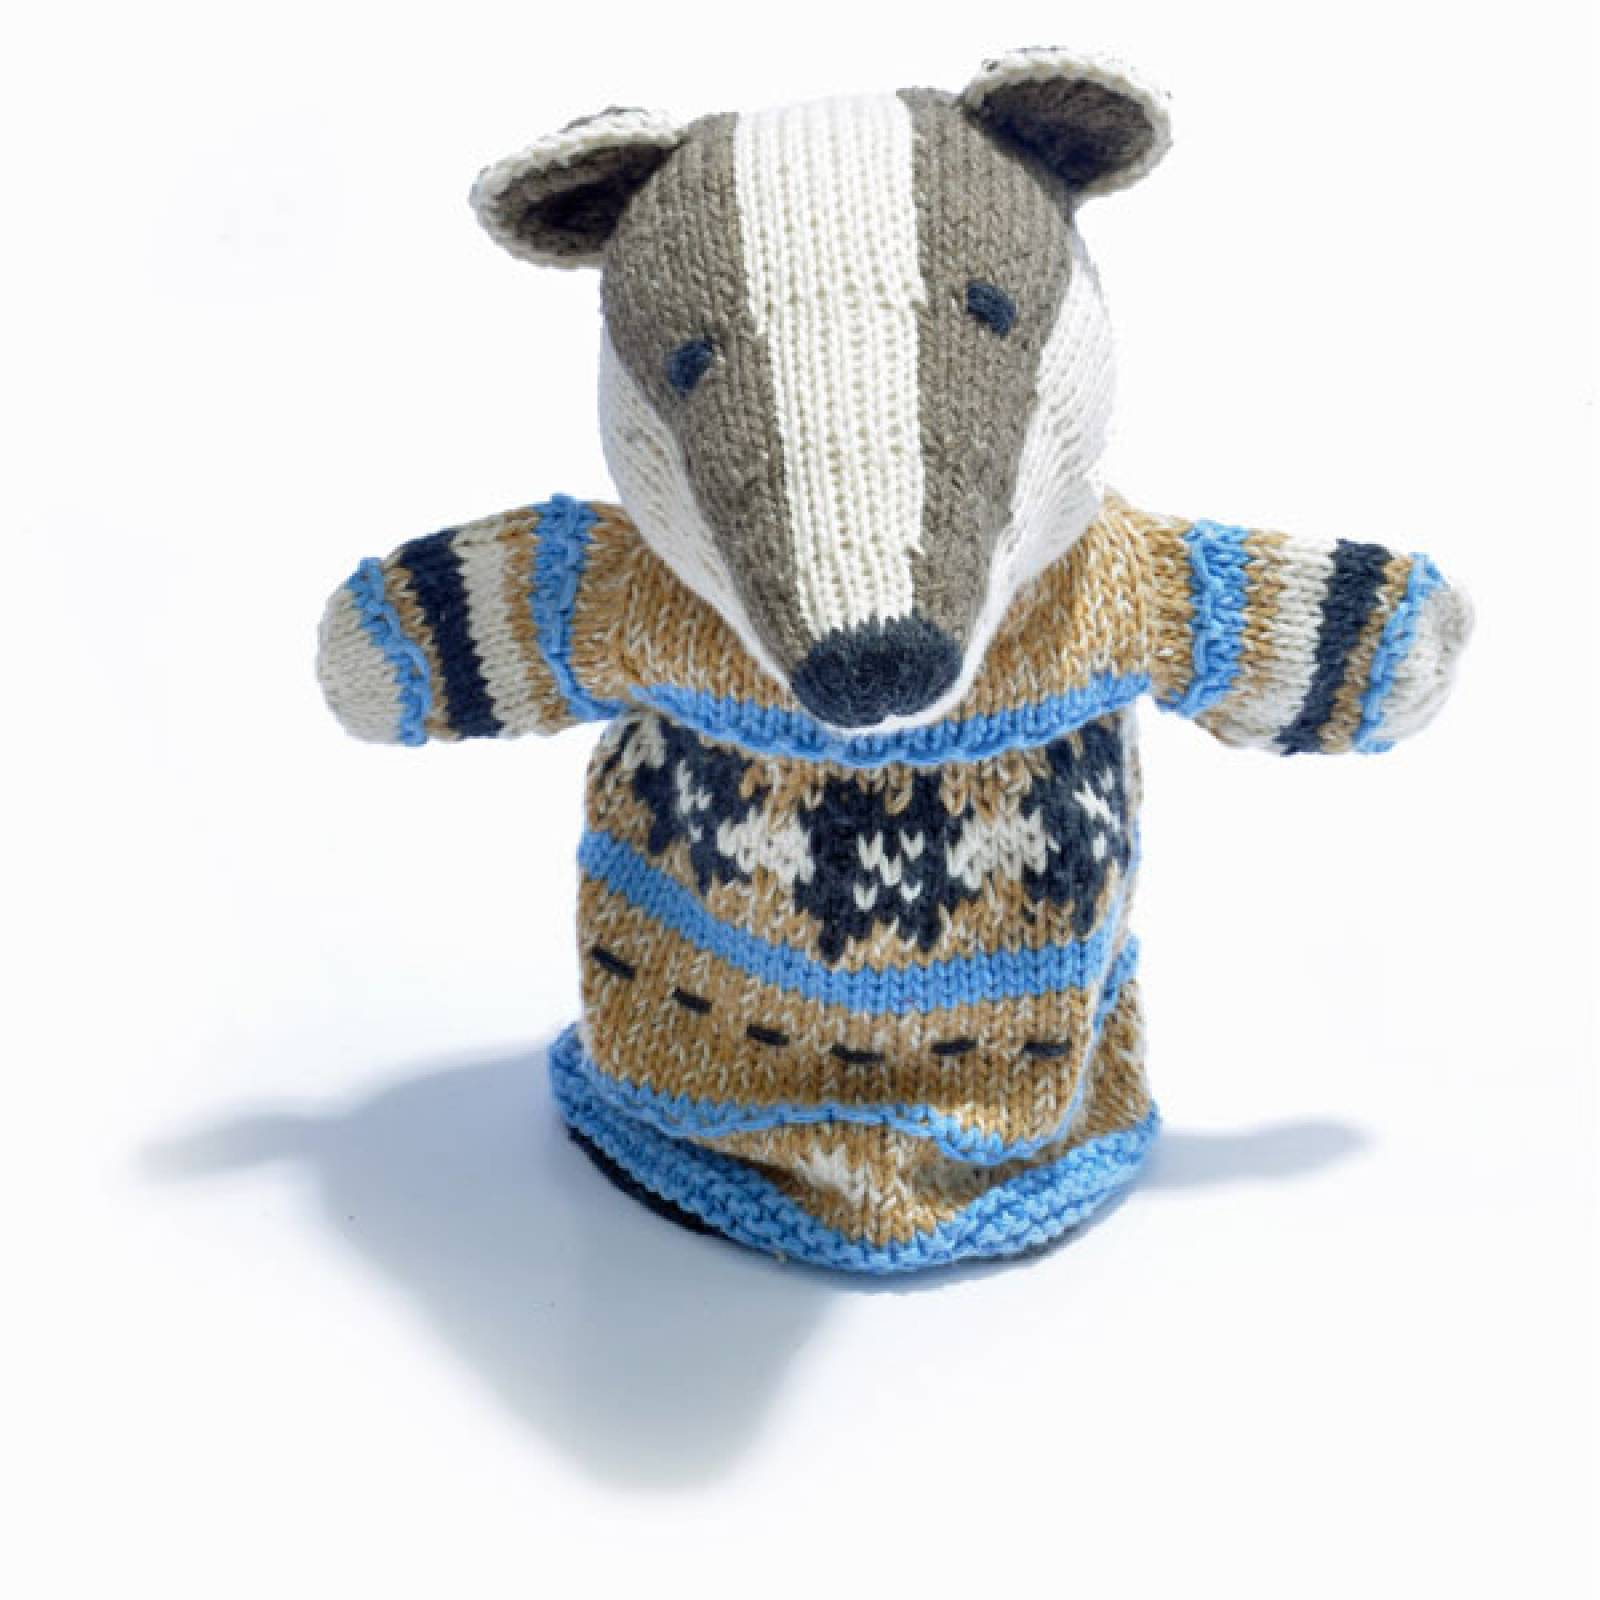 Badger - Hand Knitted Glove Puppet Organic Cotton